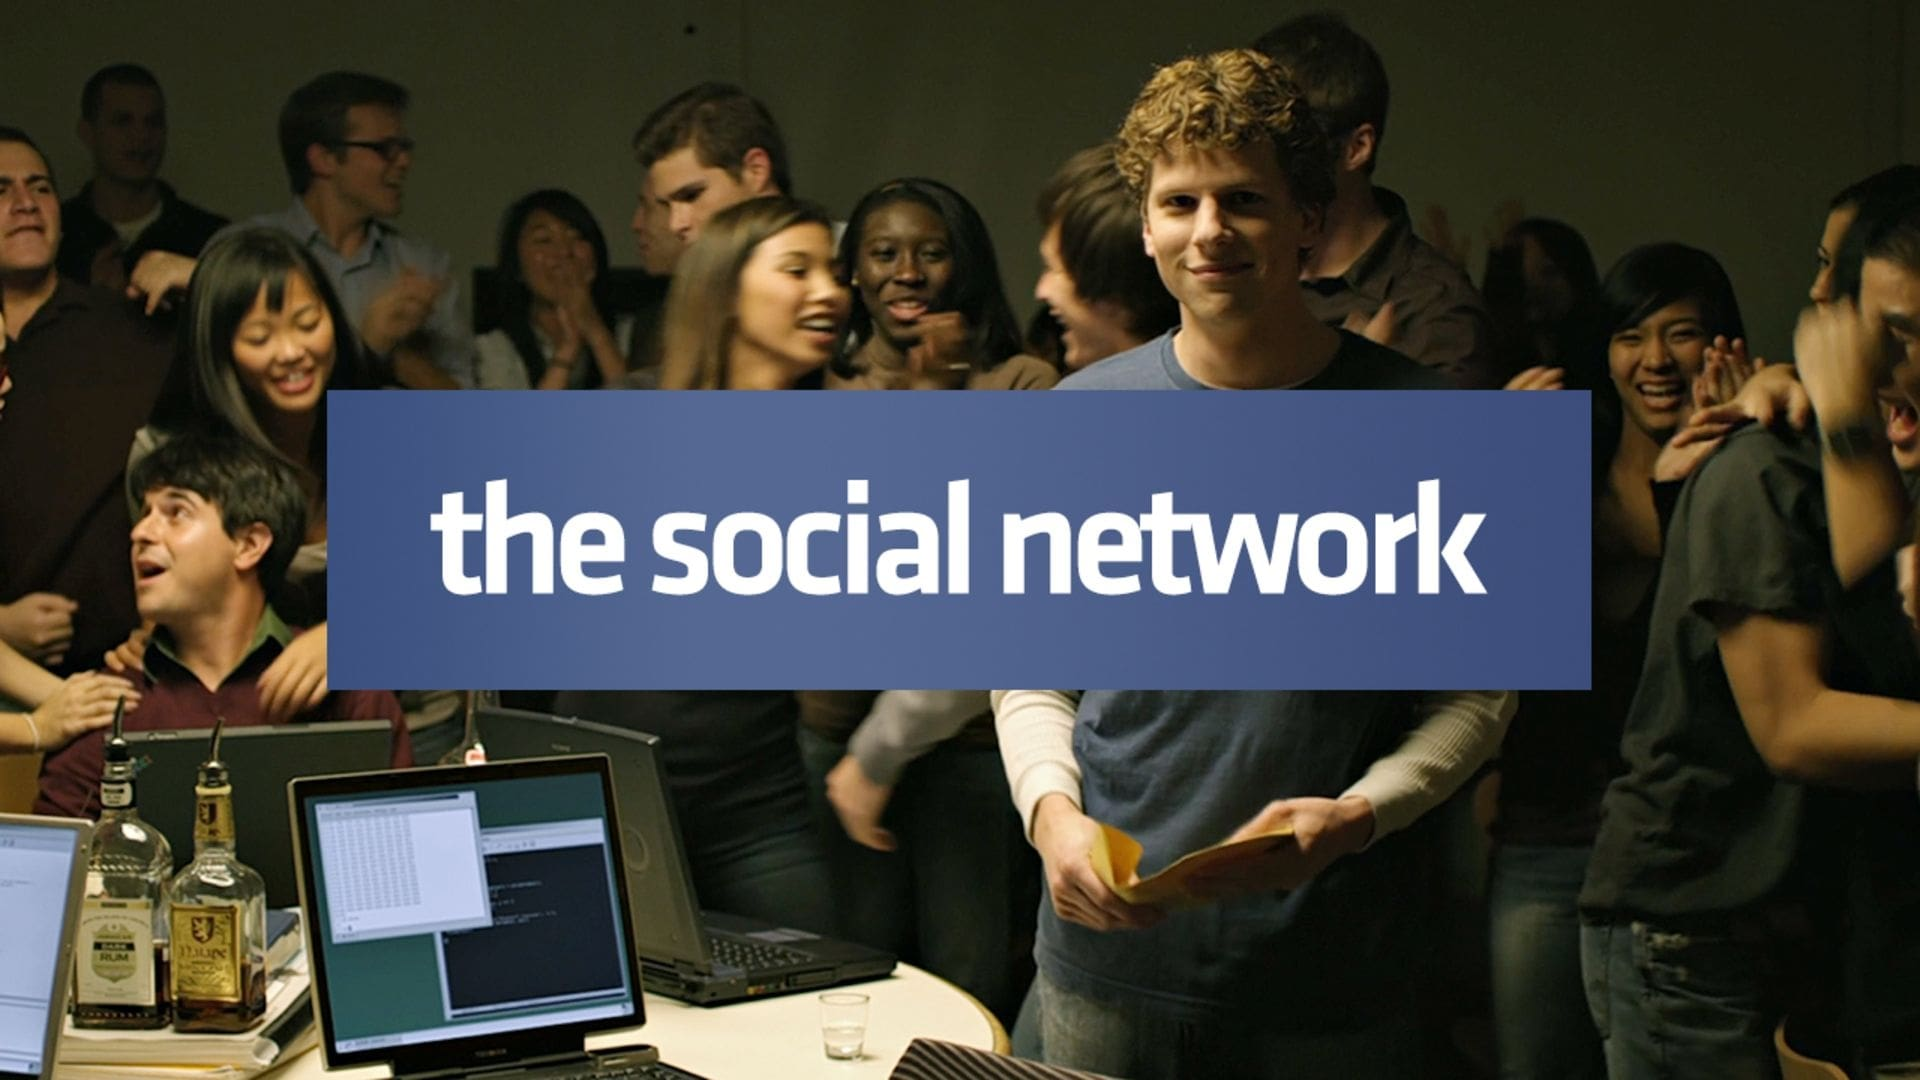 Filmszene aus The Social Network